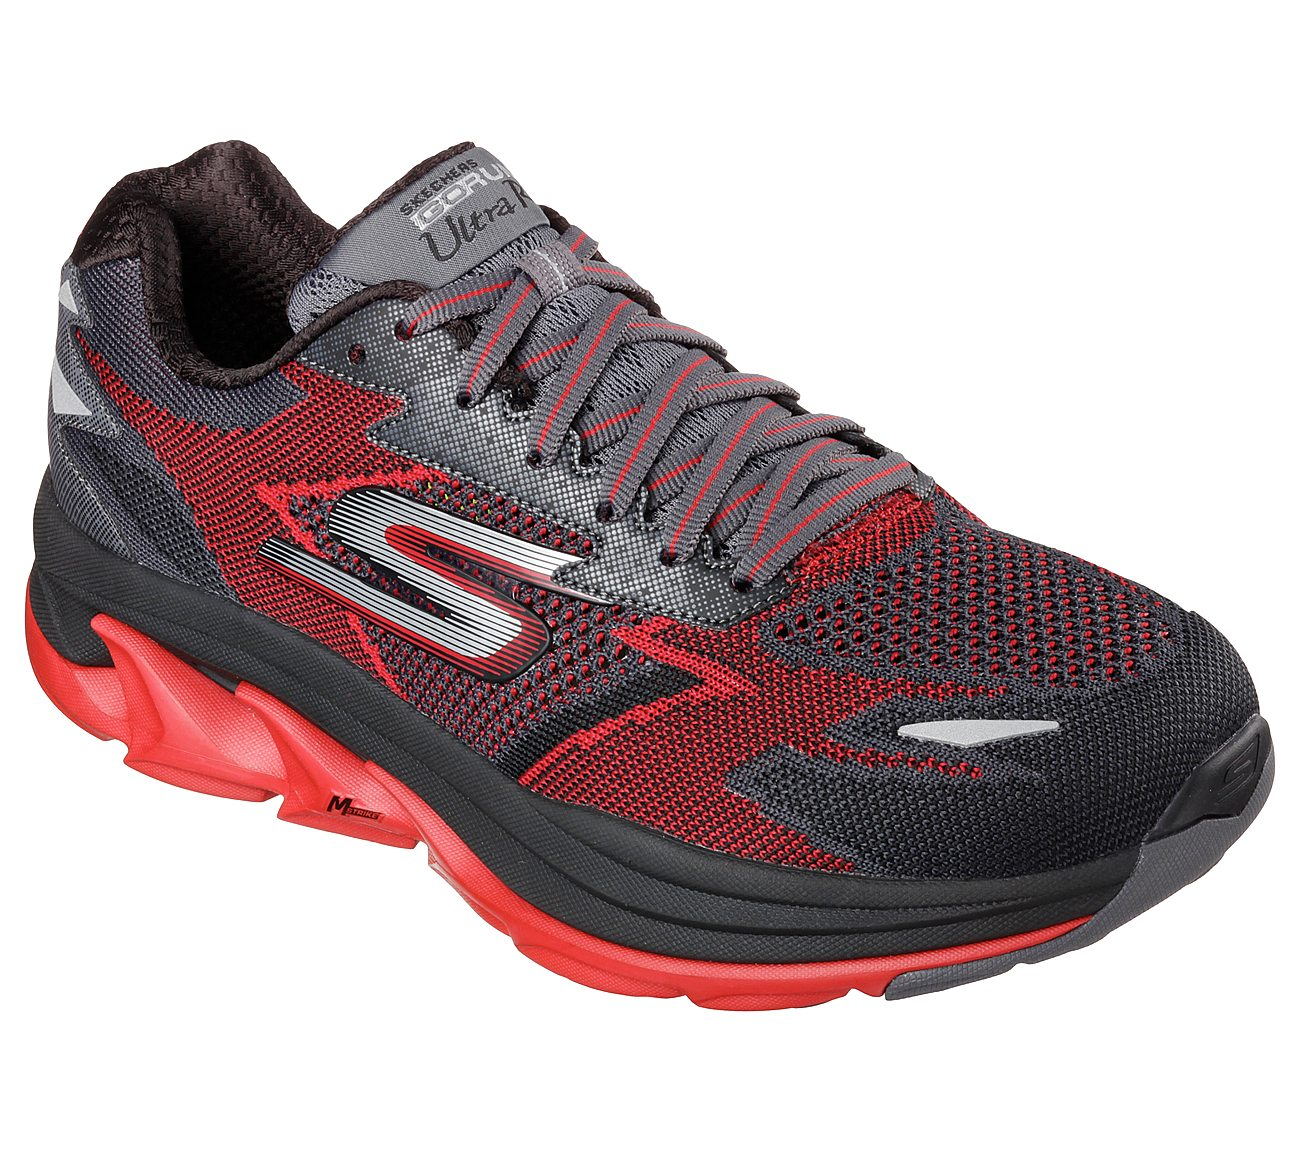 Buy SKECHERS Skechers GOrun Ultra Road Skechers Performance 5m3b2